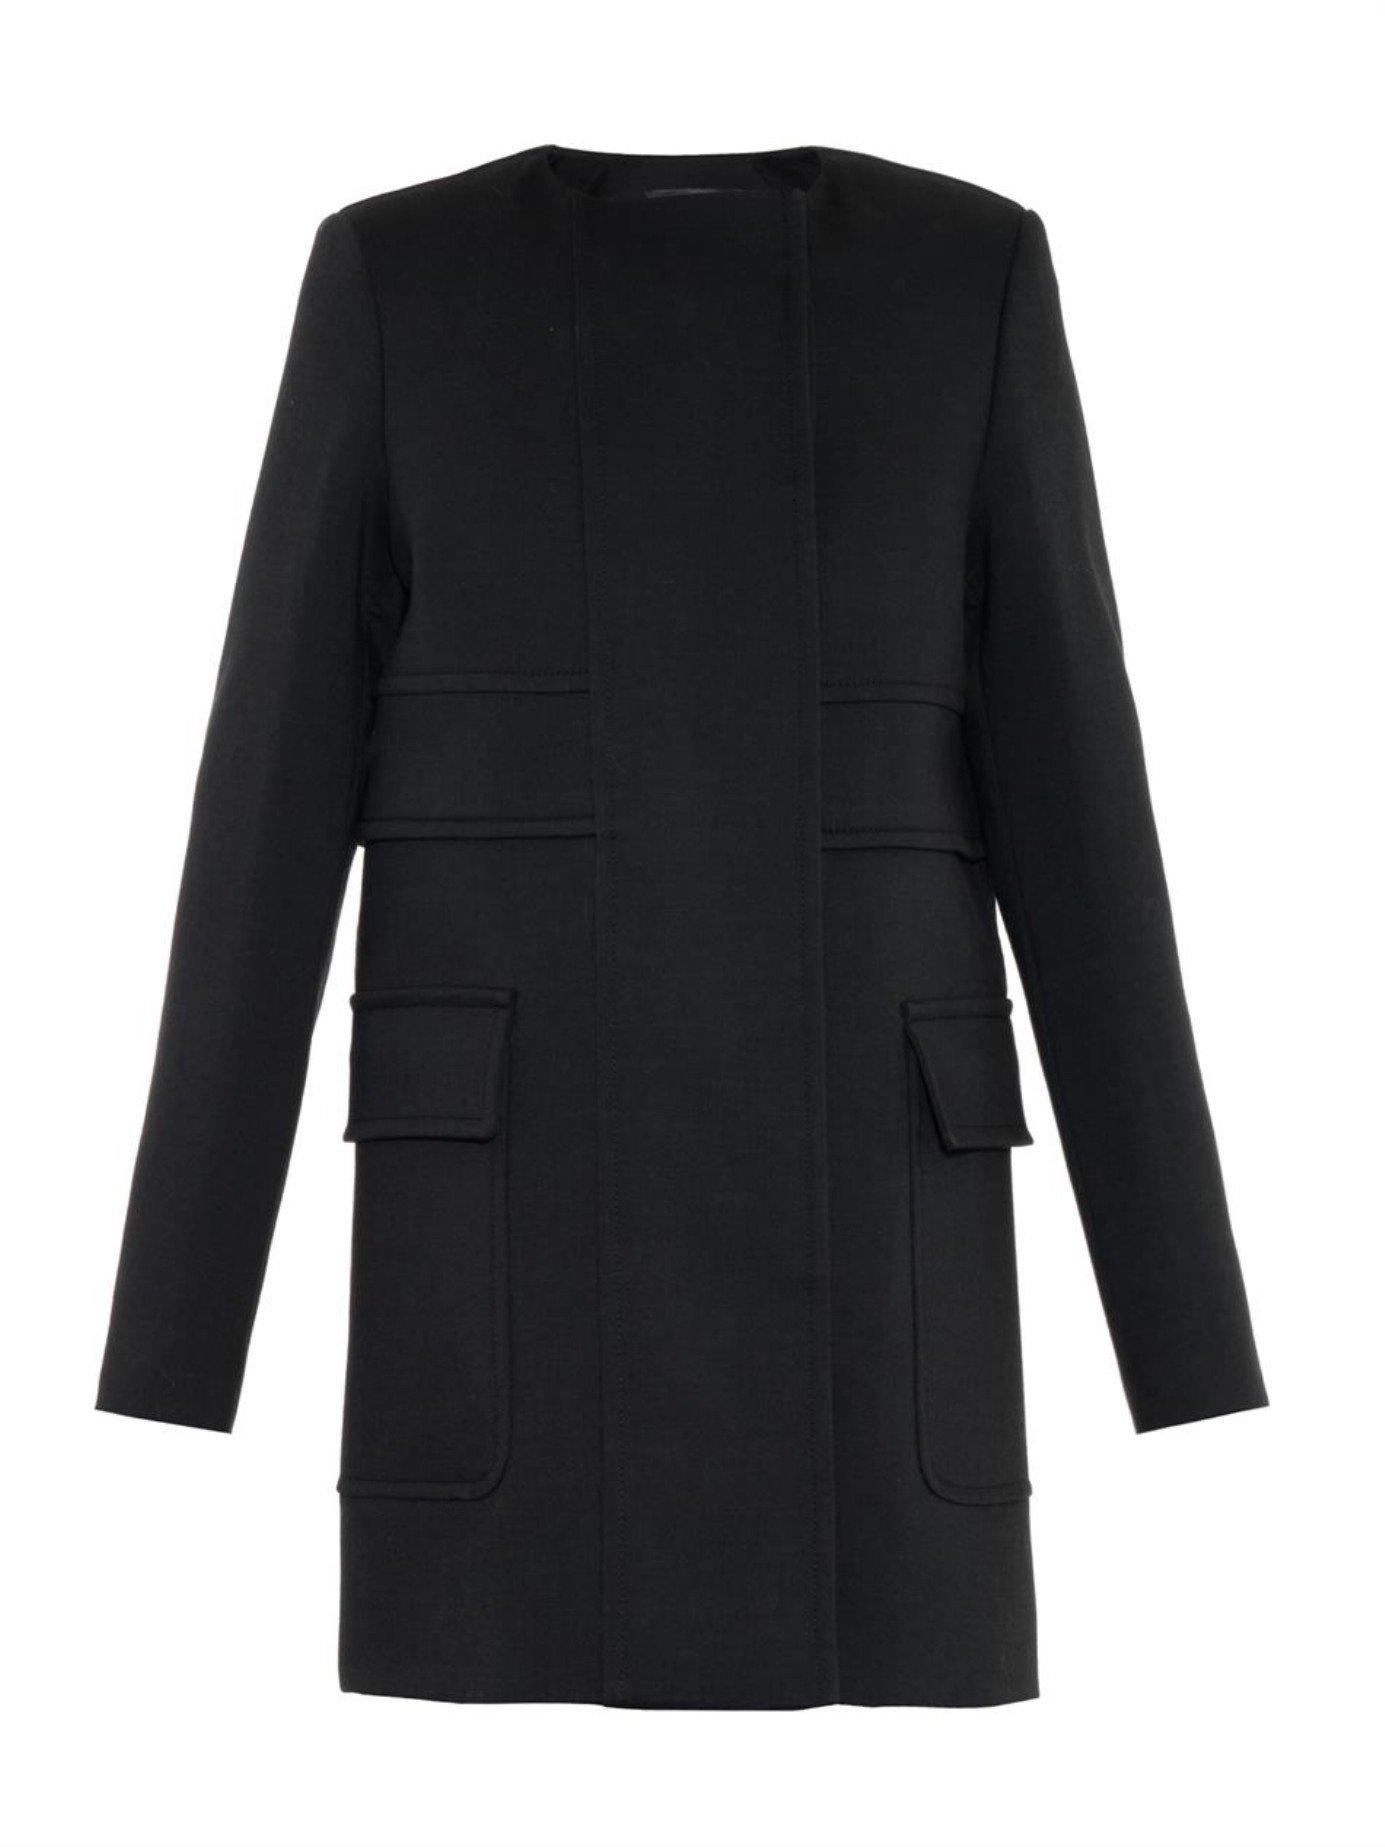 Proenza schouler Double-breasted Wool Coat in Black | Lyst